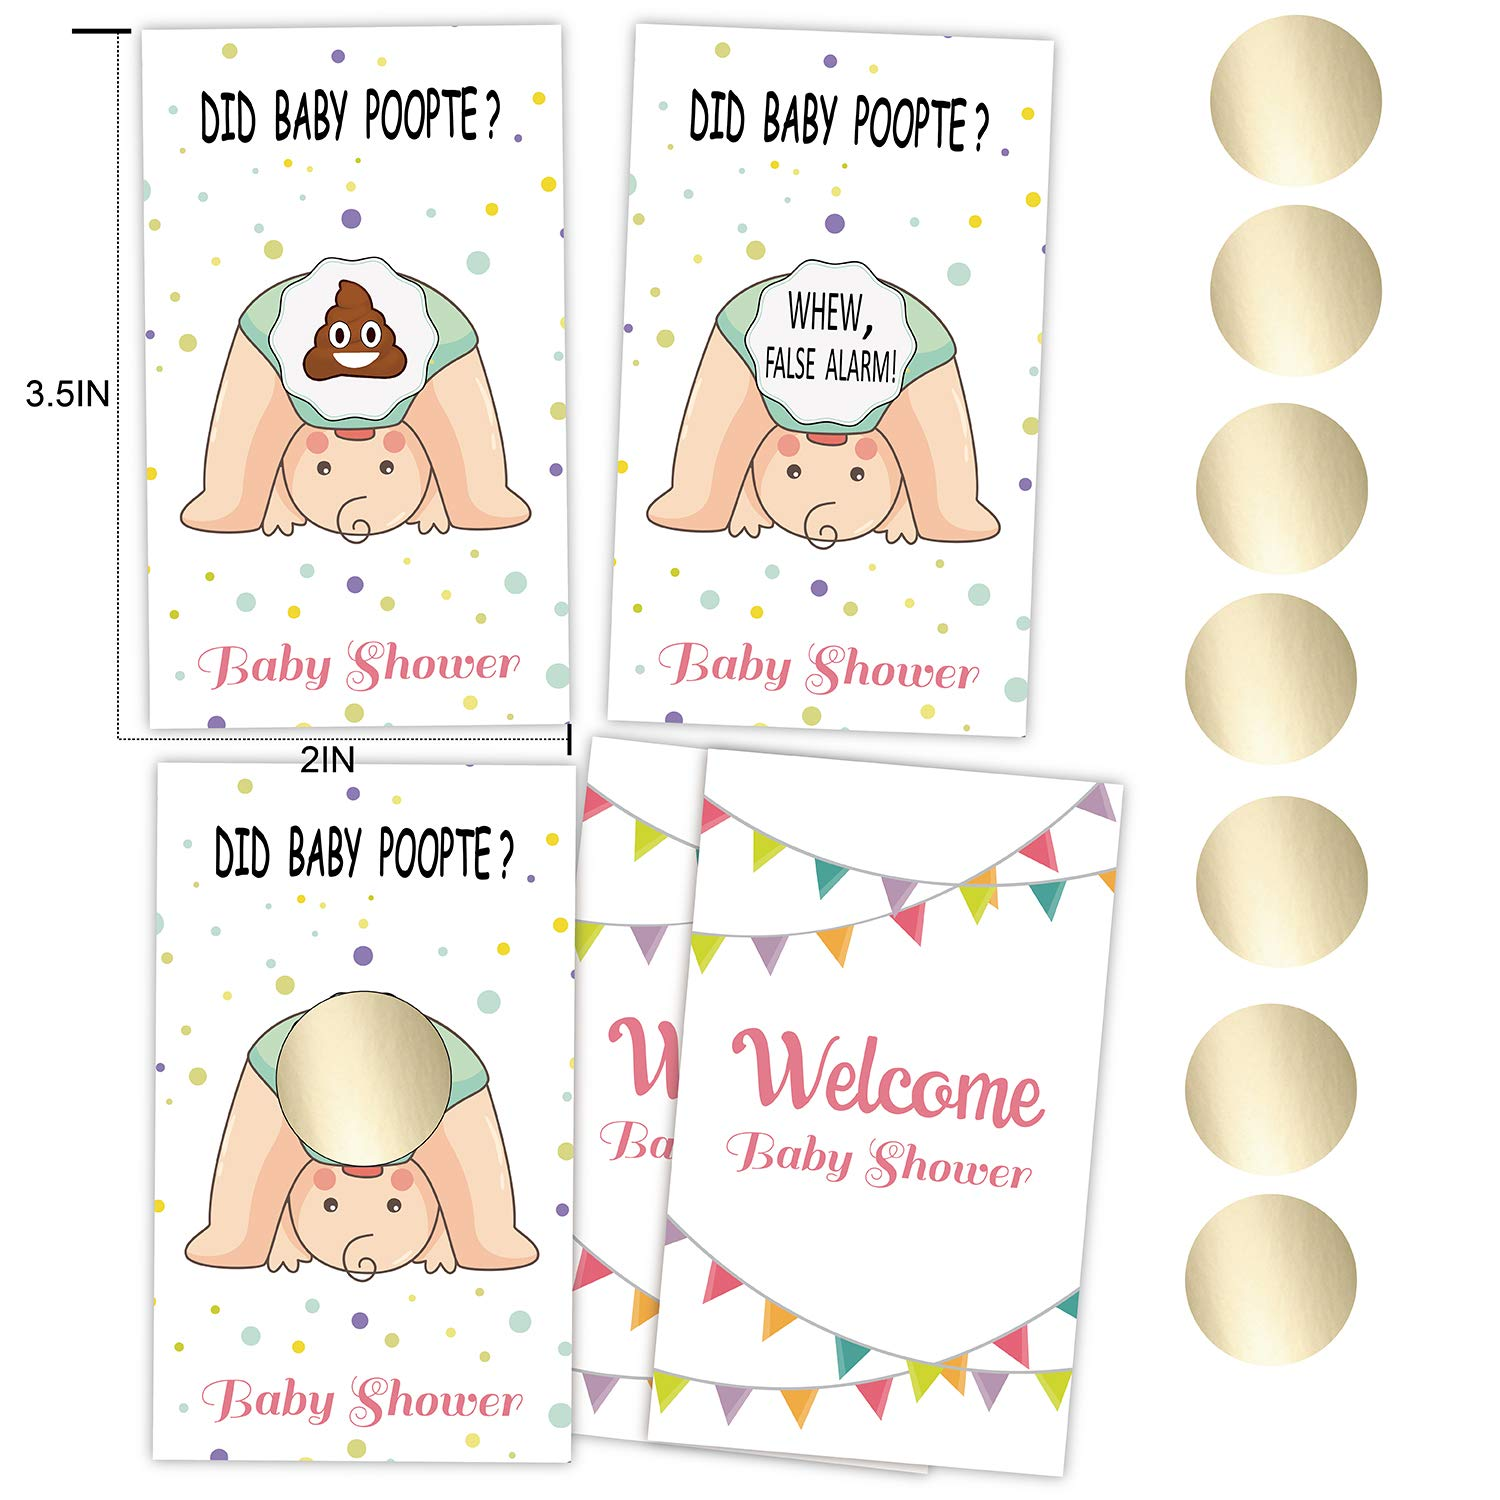 Door Prizes Set of 30 Unisex Lottery Ticket Raffle Card Game for Diaper Raffles Baby Shower Scratch Off Cards Game etyx001 Ice Breakers